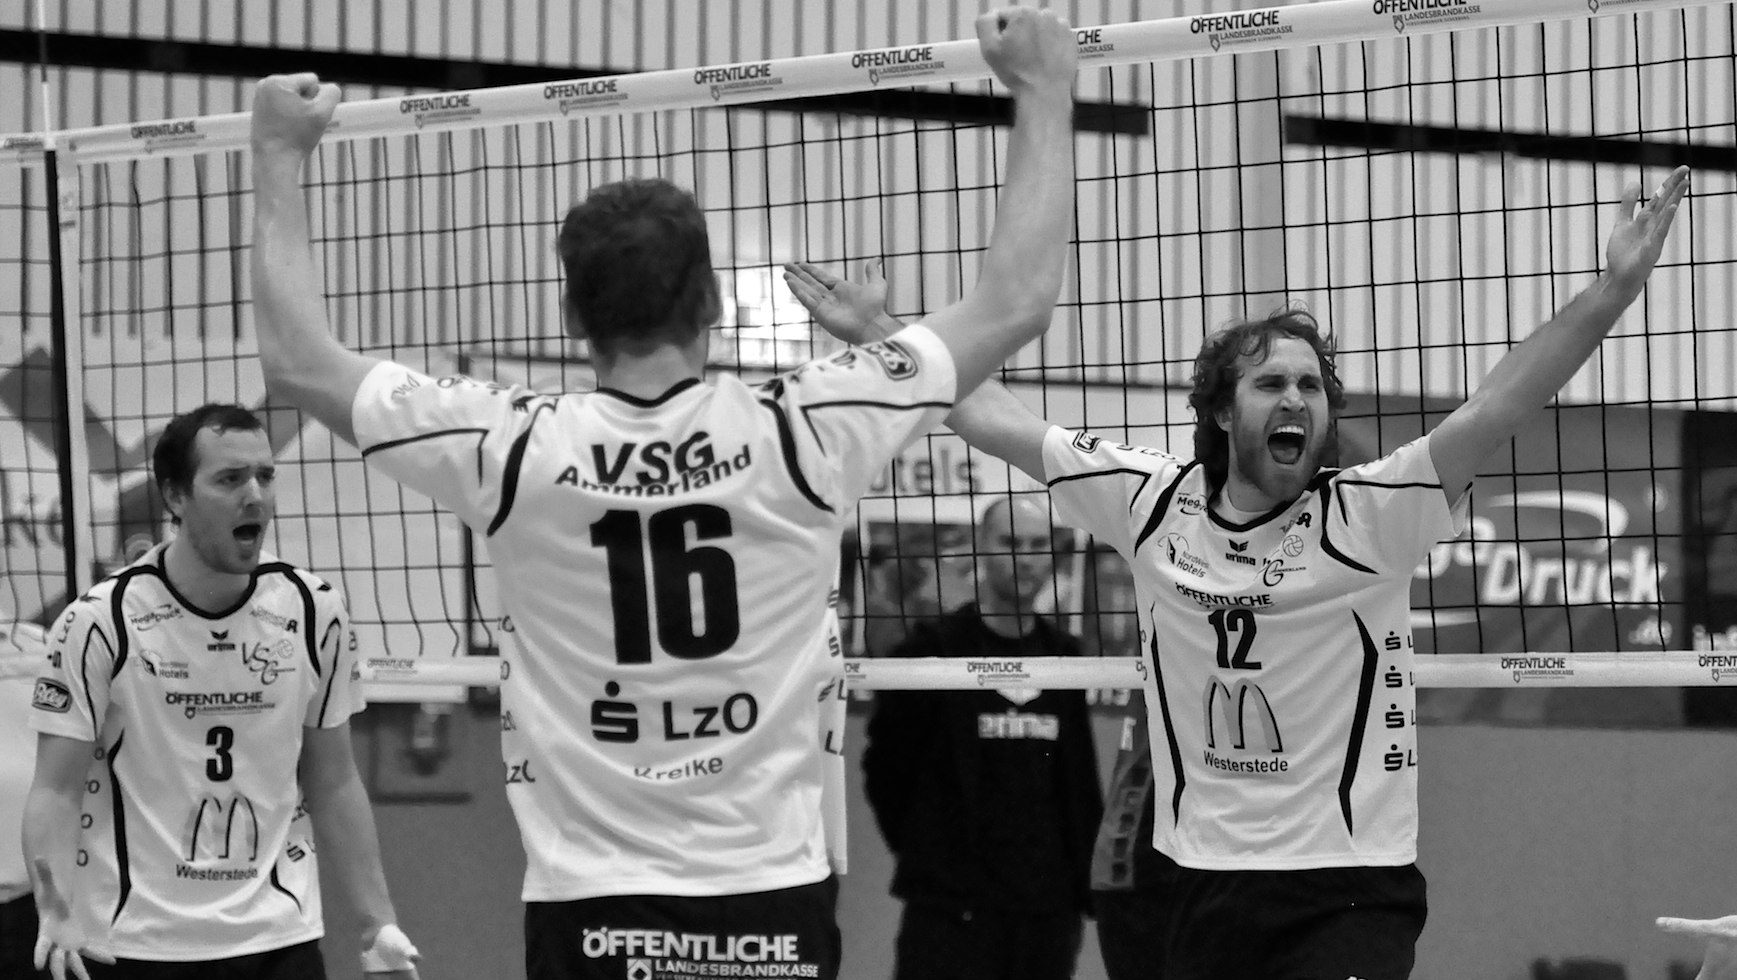 Volleyball VSG Ammerland 27.01.2013